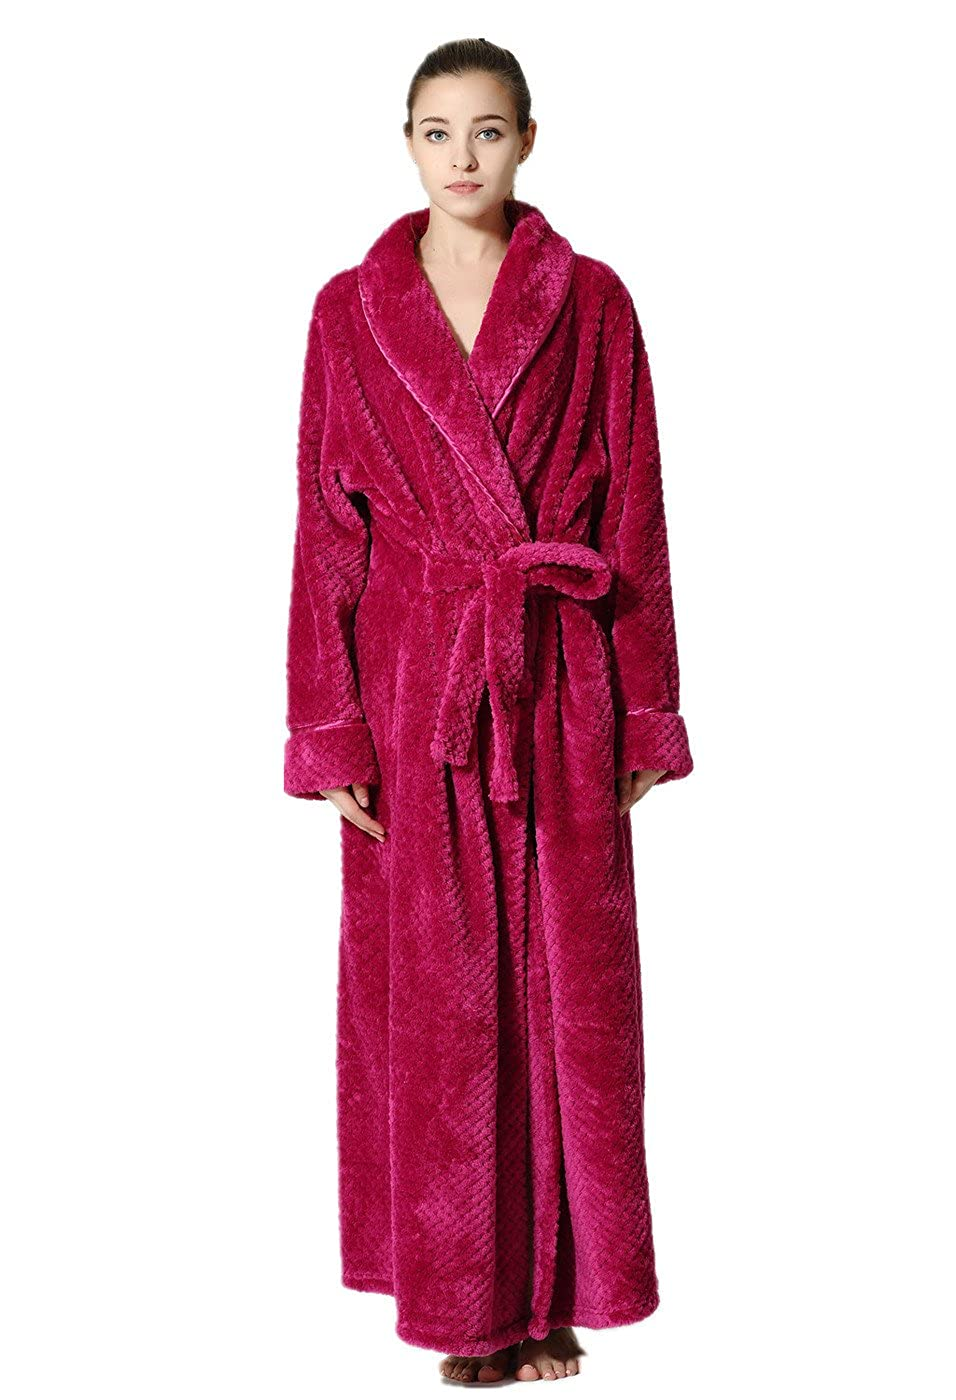 0df2ca182b VERNASSA Women s Long Robe Bathrobes Soft Kimono Spa Robe Sleepwear Fleece  Robe at Amazon Women s Clothing store